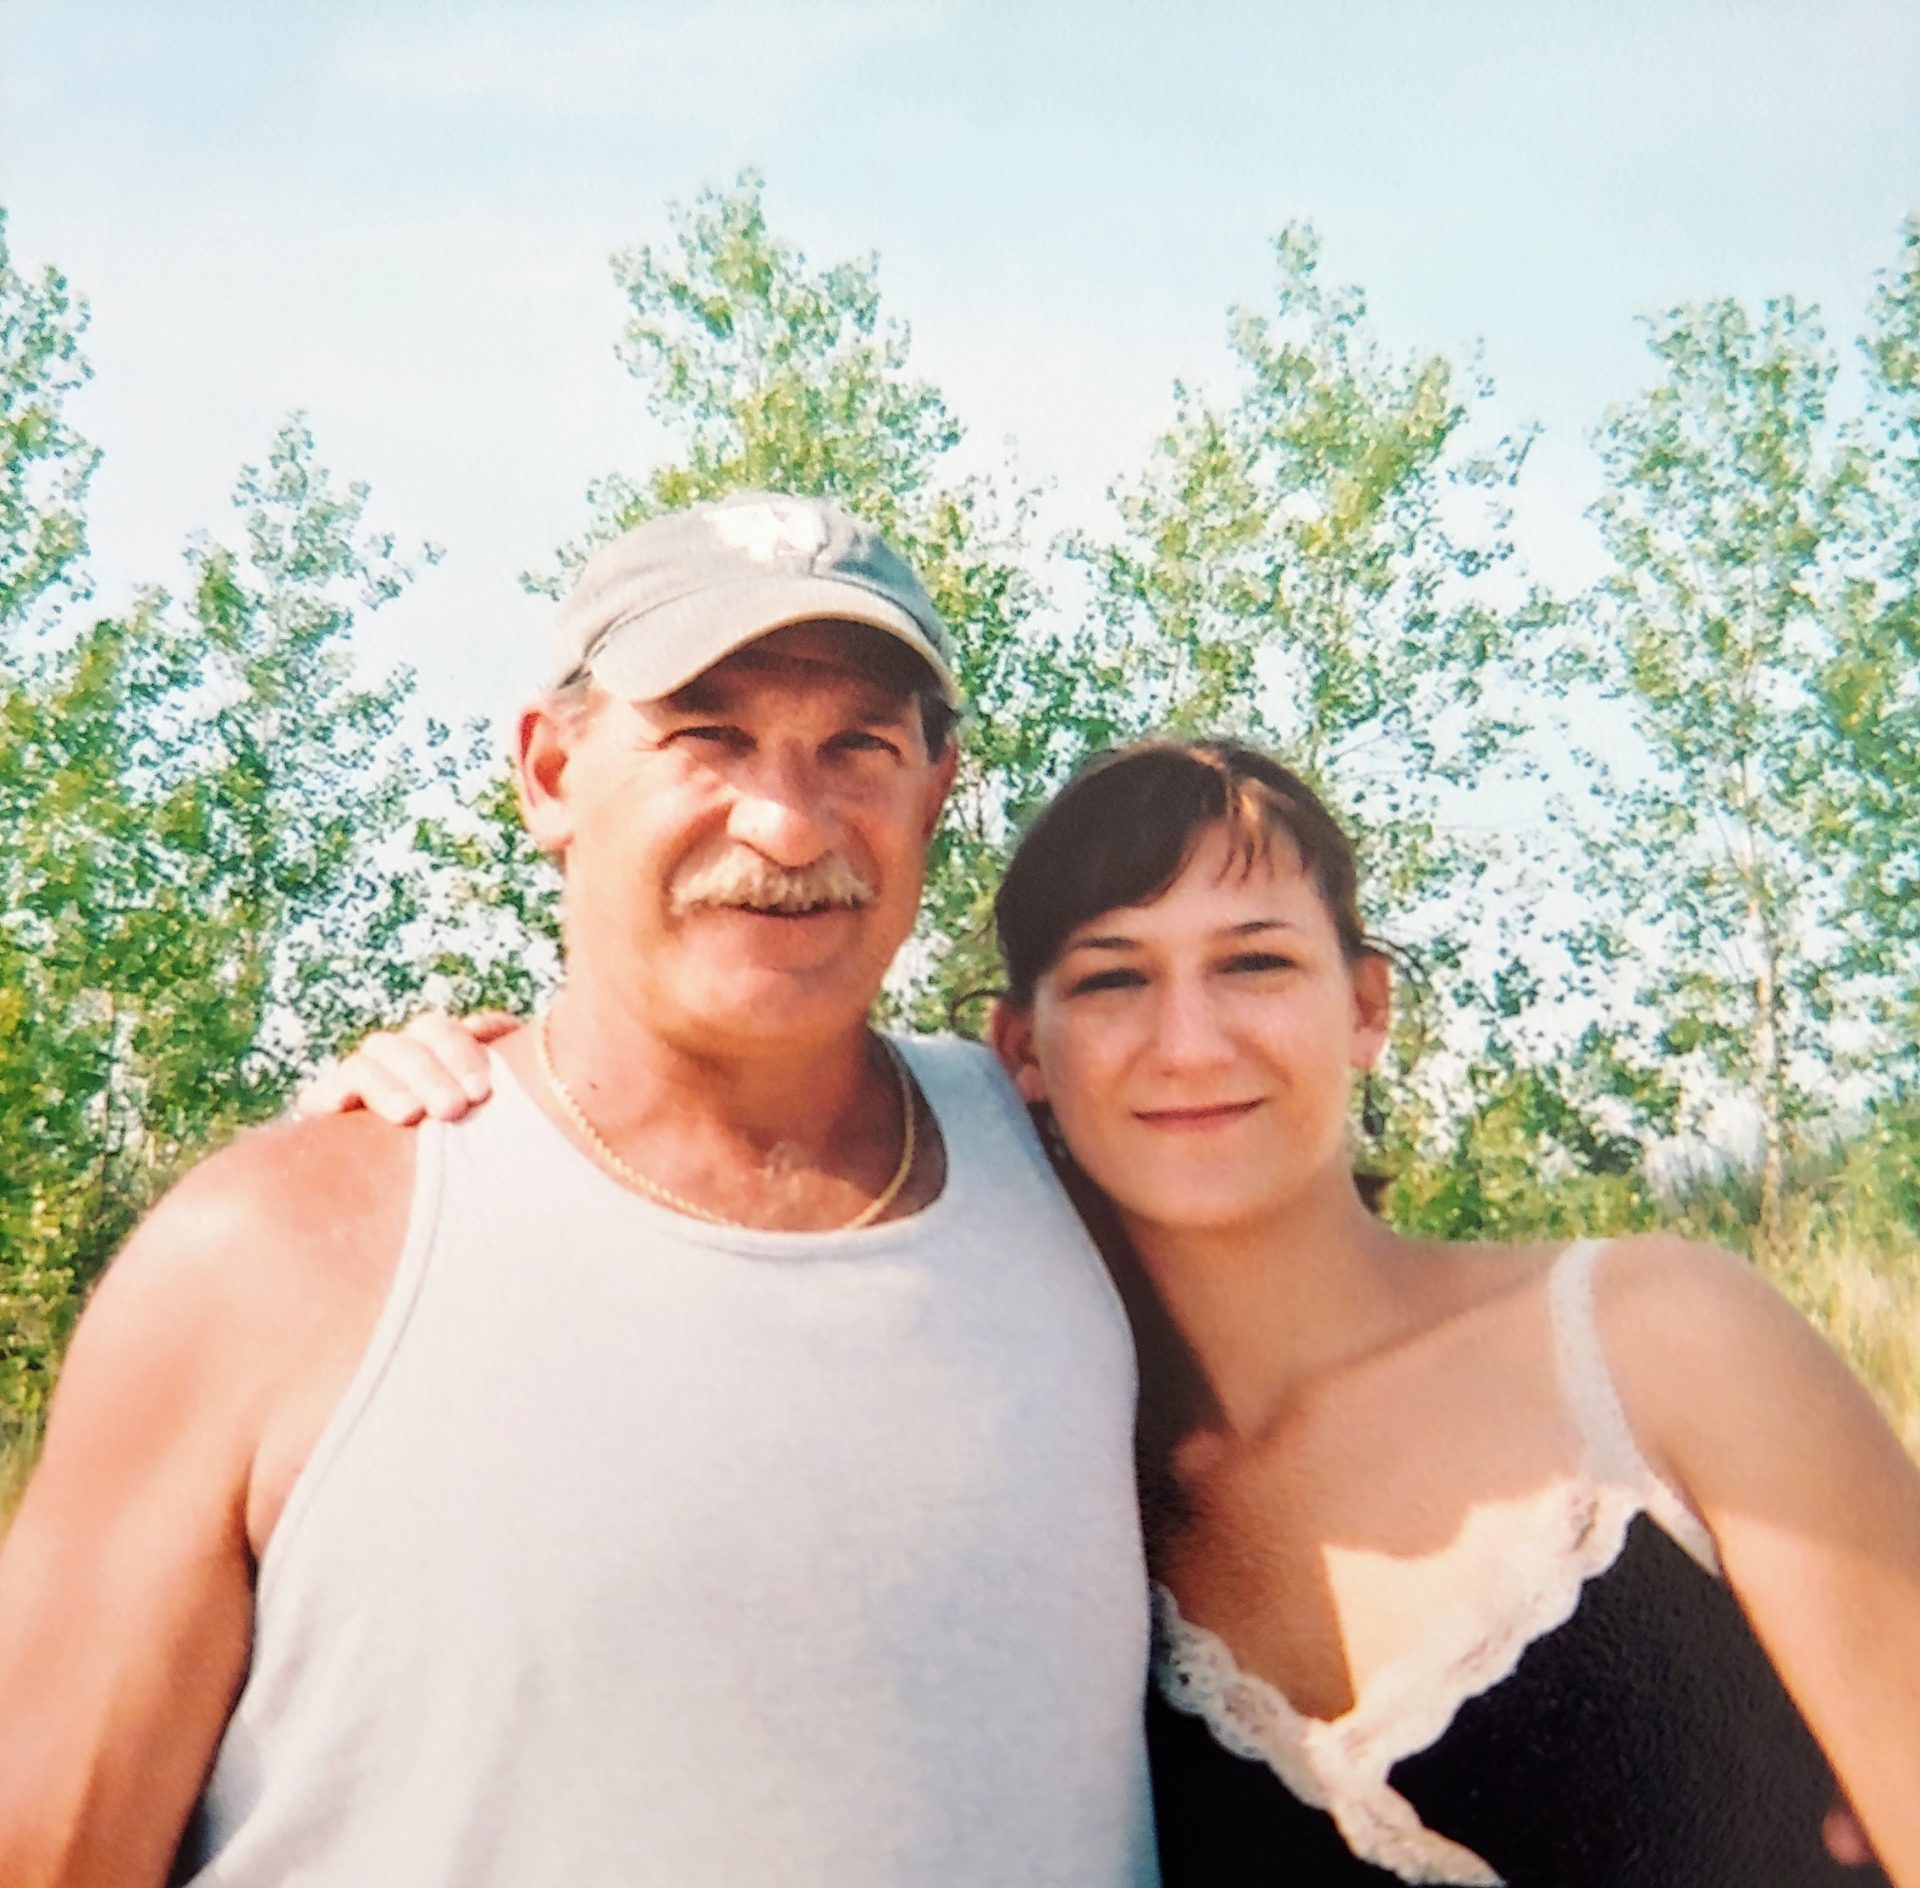 Crystal came to visit her dad.  Very nice picture of daughter and daddy